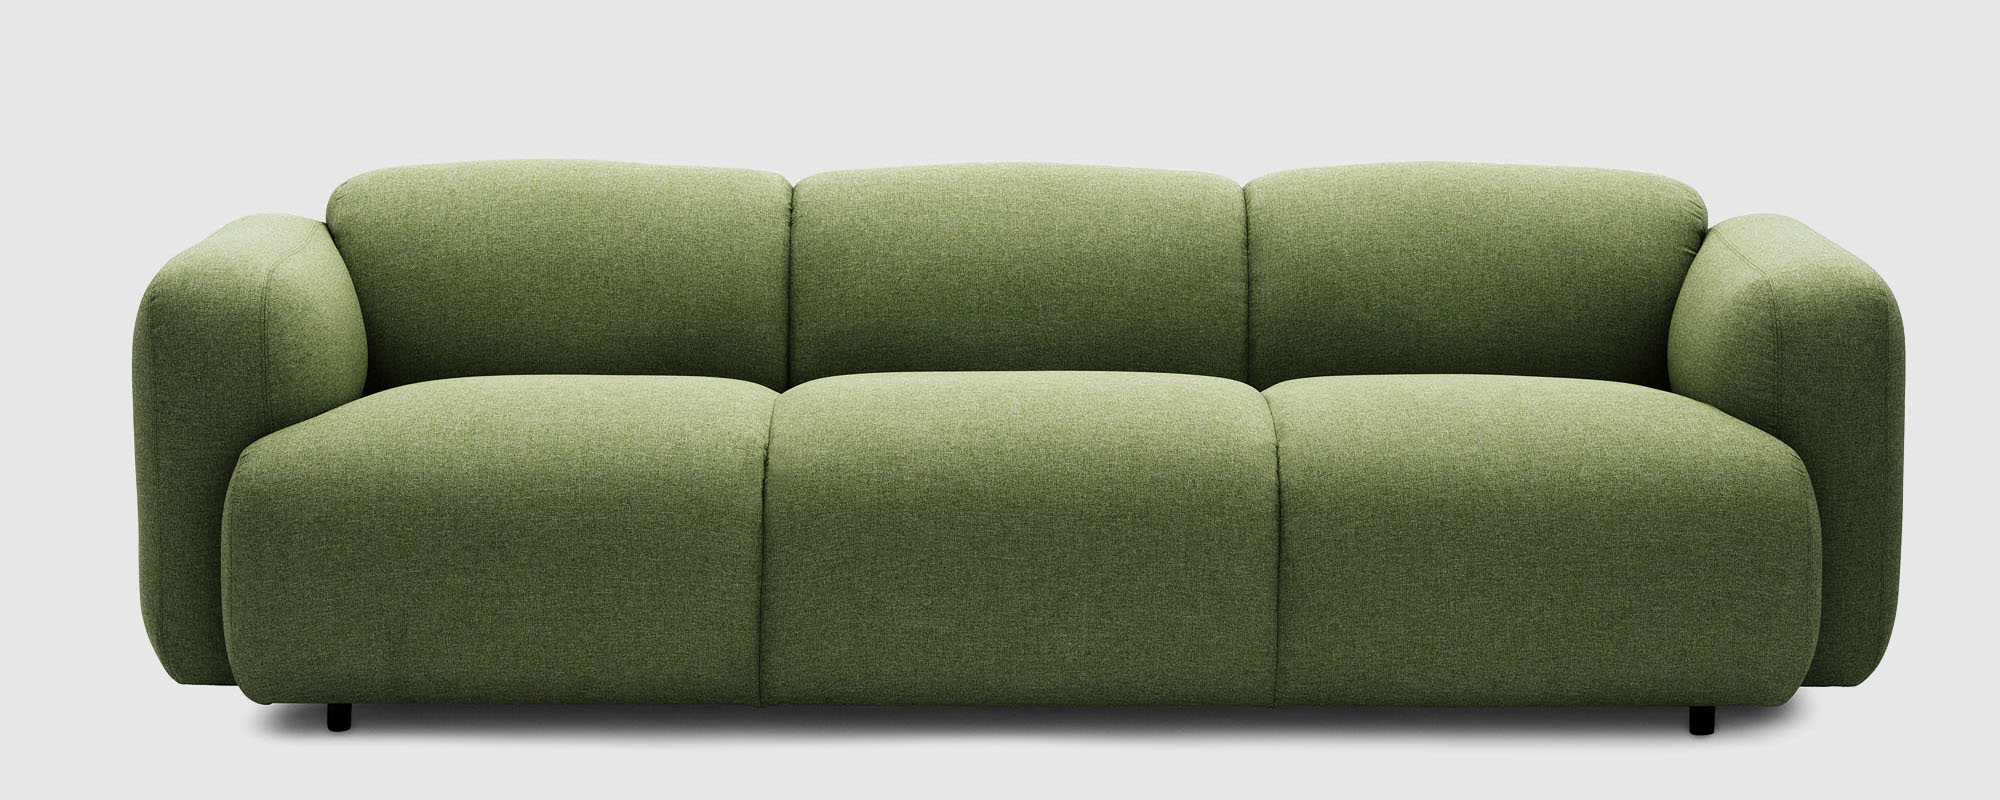 SwellSofa68005_2000x800-grey